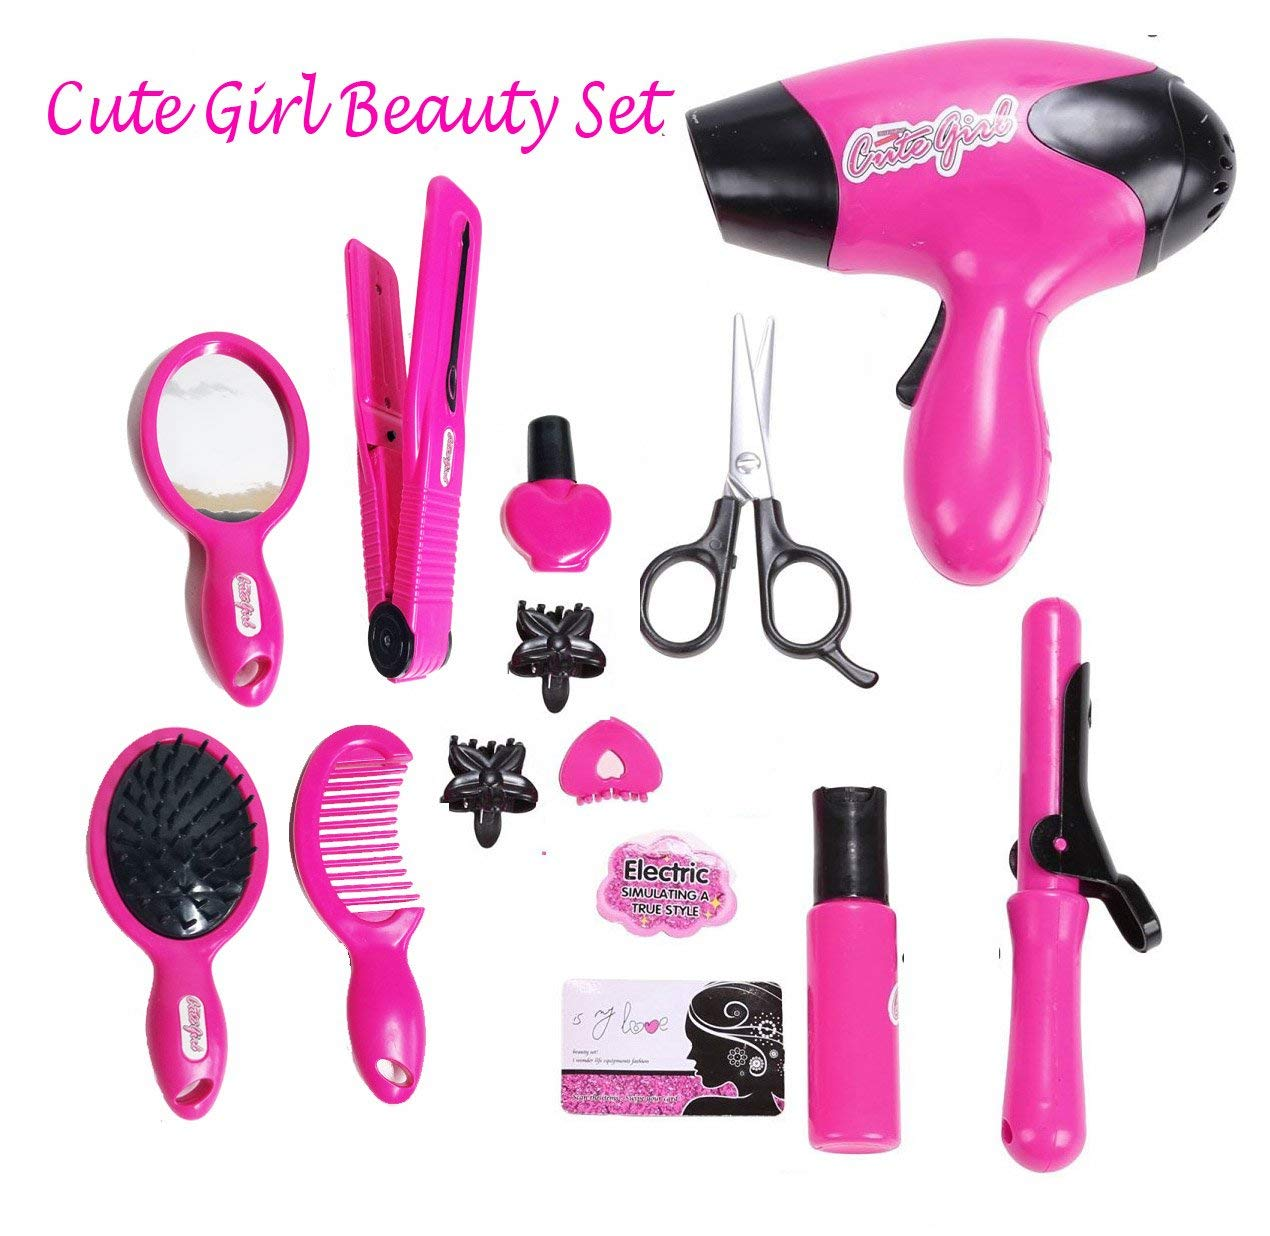 WG Toys Girl Make Up Toy Pretend Play Cosmetic Set, with Hair Dryer Curling Iron, Mirror and Other Fashion Accessories for Little Girl